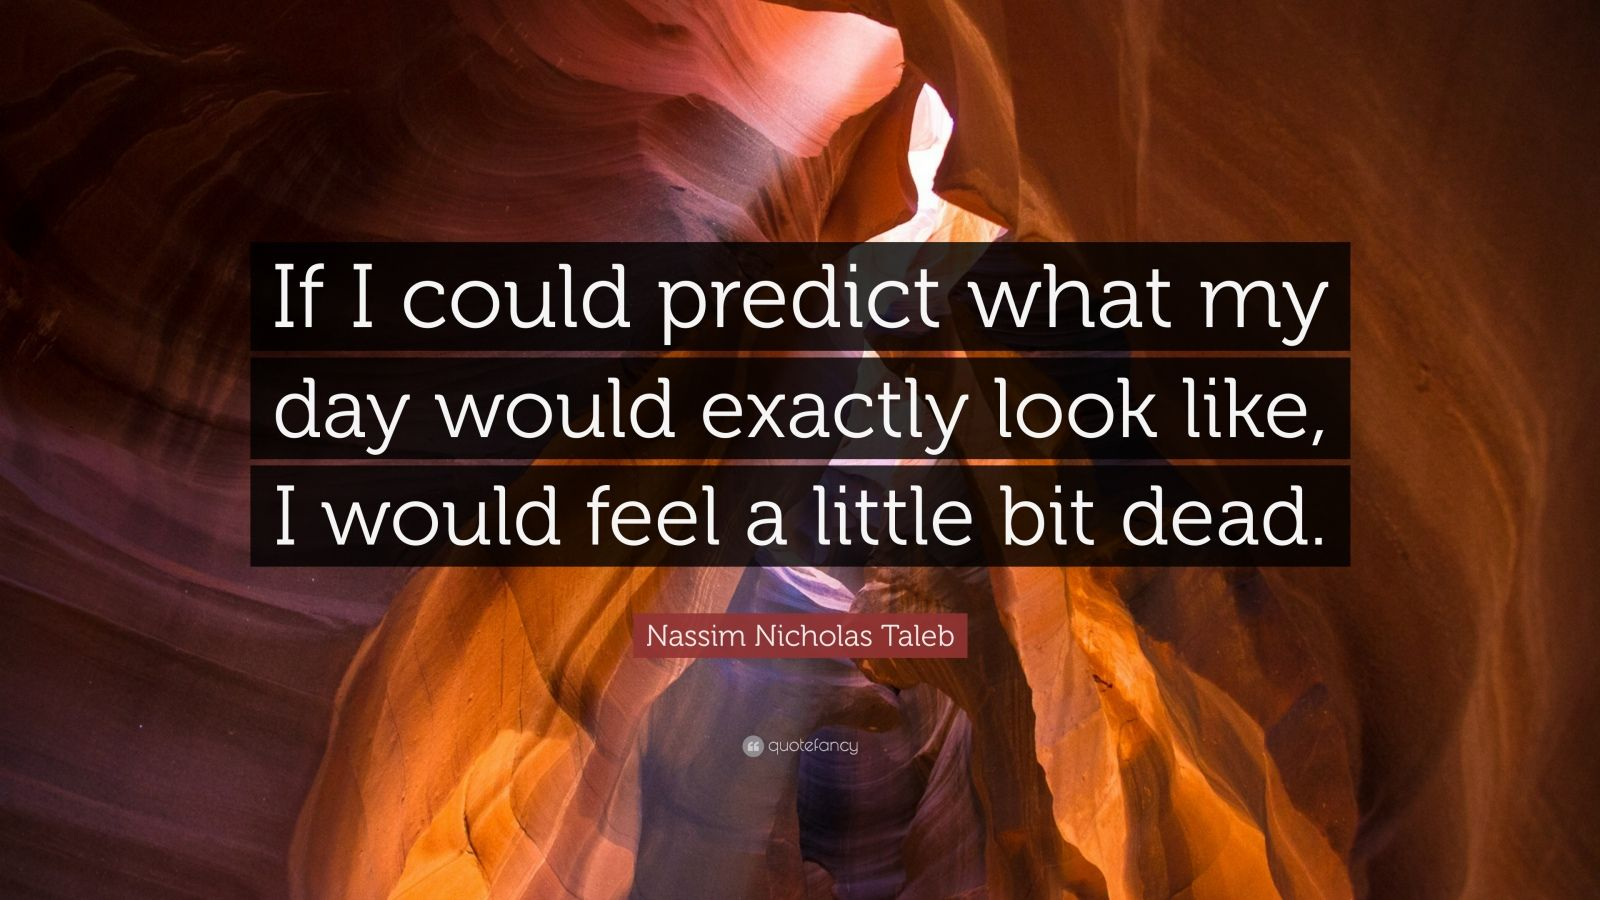 """Nassim Nicholas Taleb Quote: """"If I could predict what my day would exactly look like, I would feel a little bit dead."""""""